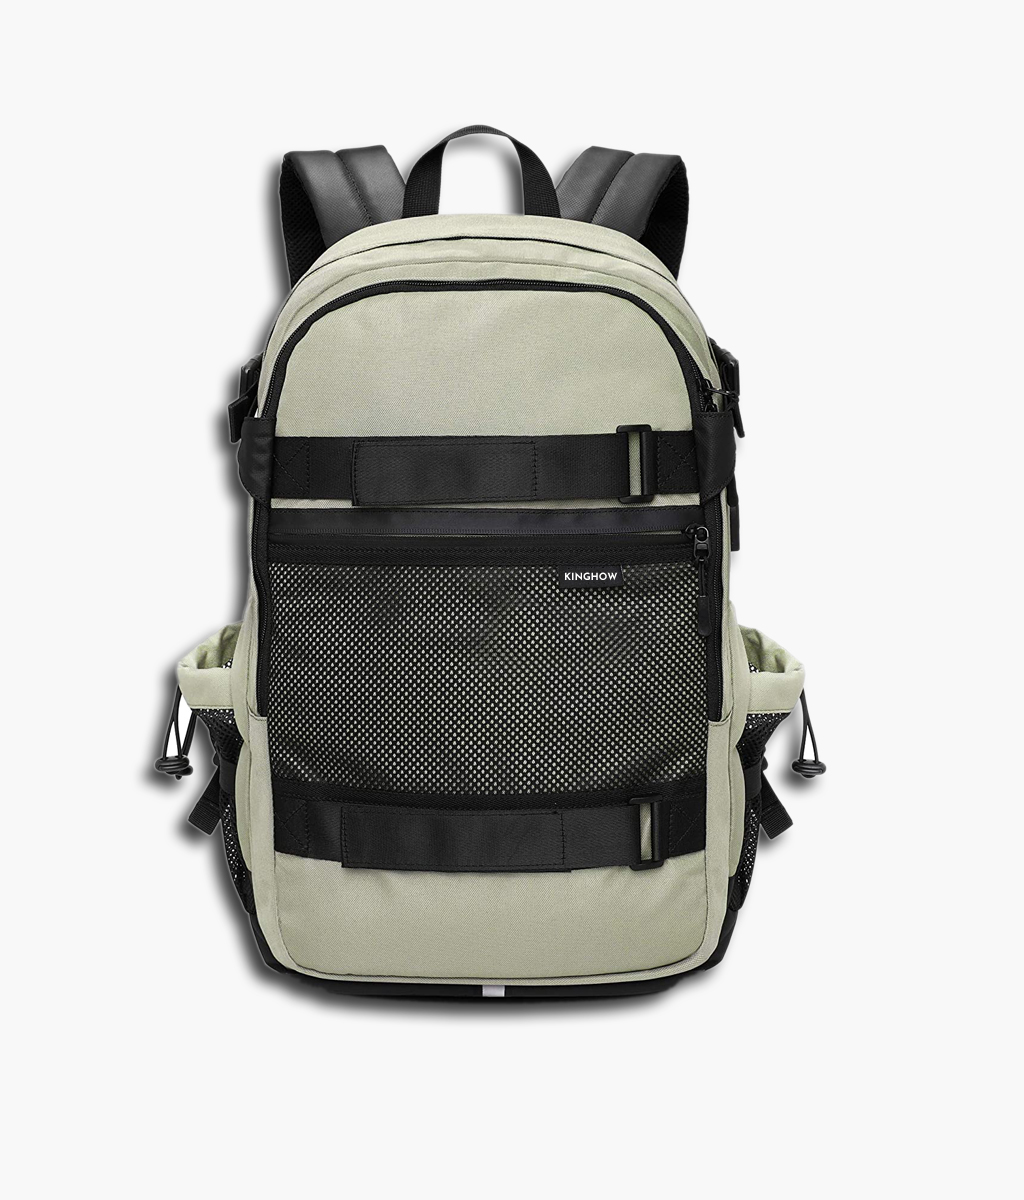 China High Quality Hiking Packs Factories –  Fashion Hot Sale Backpack Large Capacity Waterproof and Popular USB Charging Backpack Bag Students Laptop Backpack Bag – Kinghow Featured Image